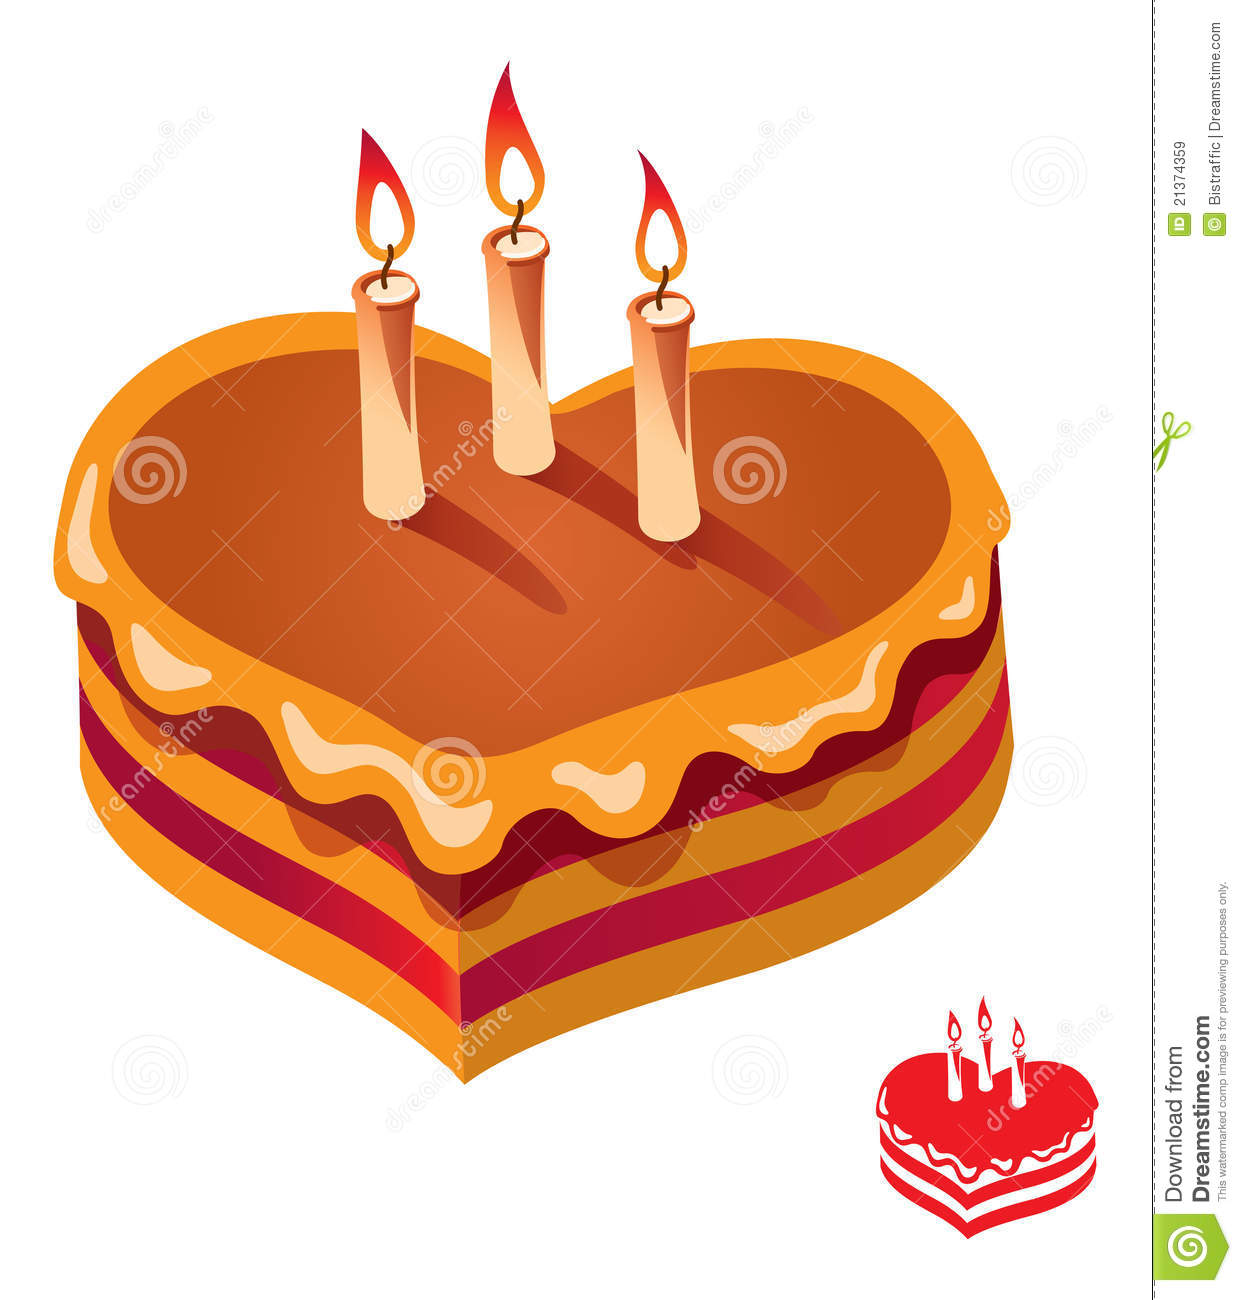 Clipart Cake Vector Free Download : Birthday Cake Vector Illustration Royalty Free Stock ...